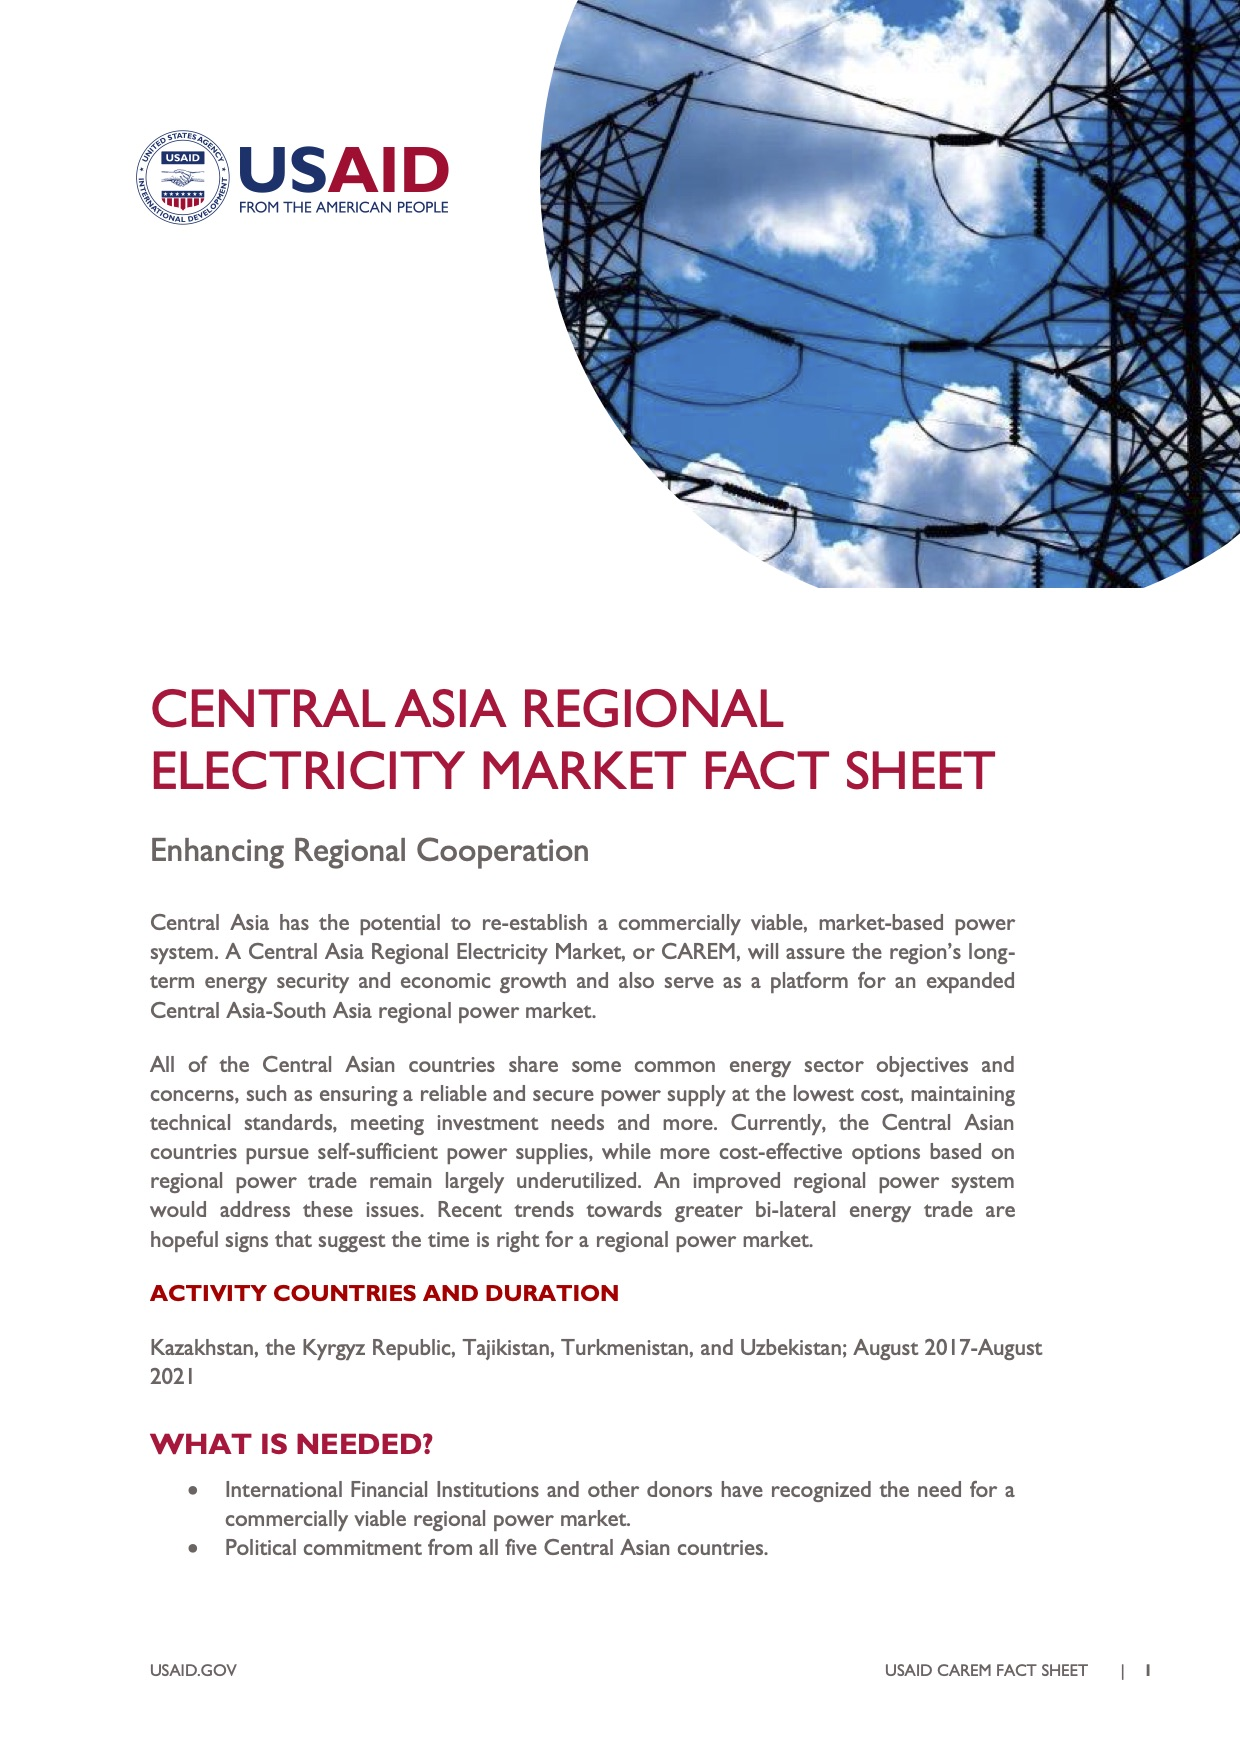 Central Asia Regional Electricity Market Fact Sheet